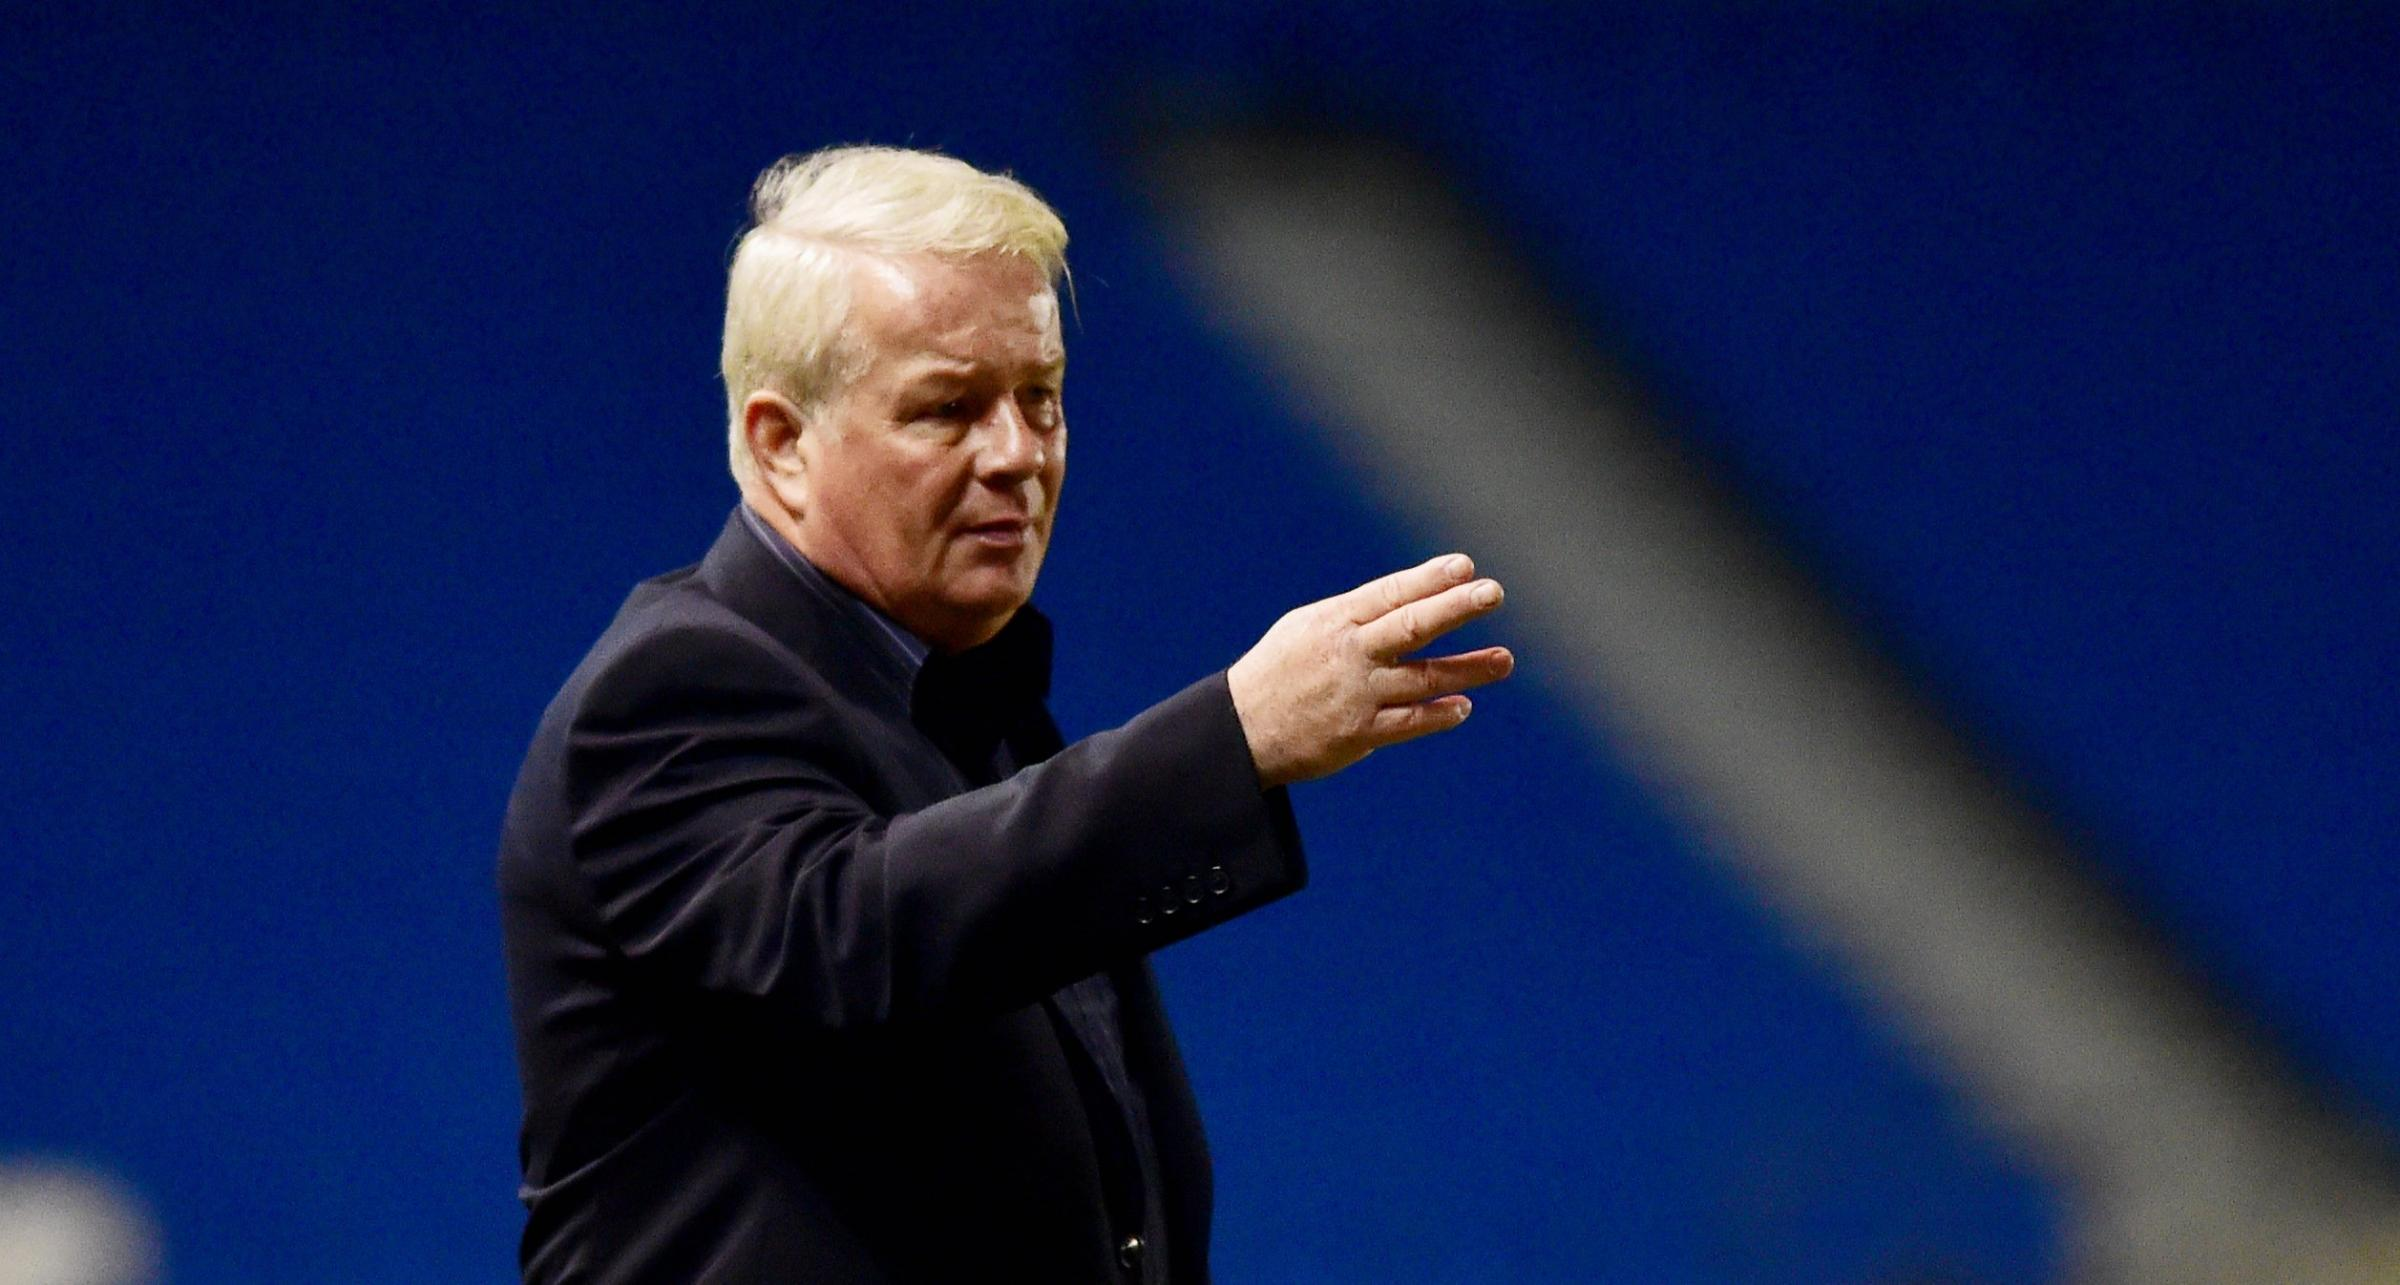 Dermot Drummy has been sacked as manager of Crawley Town